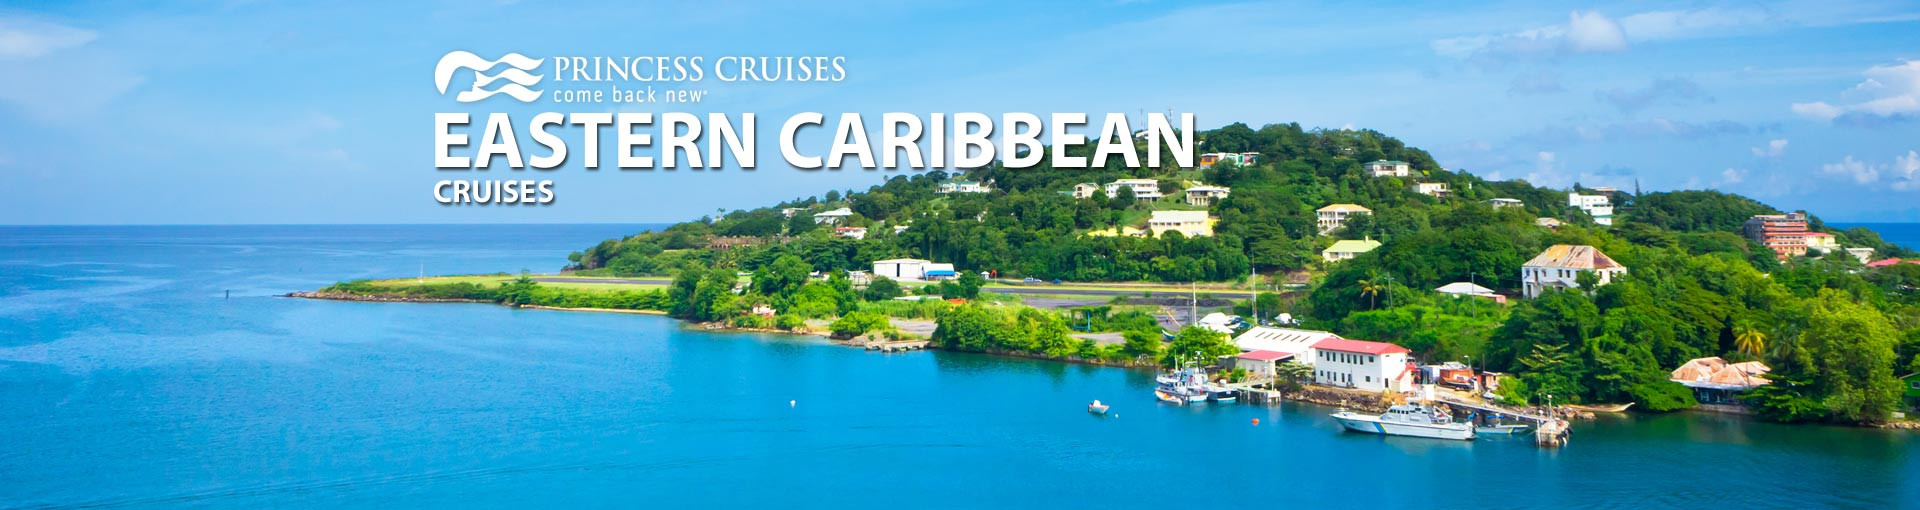 caribbean cruises 2017 and 2018 eastern caribbean princess cruises